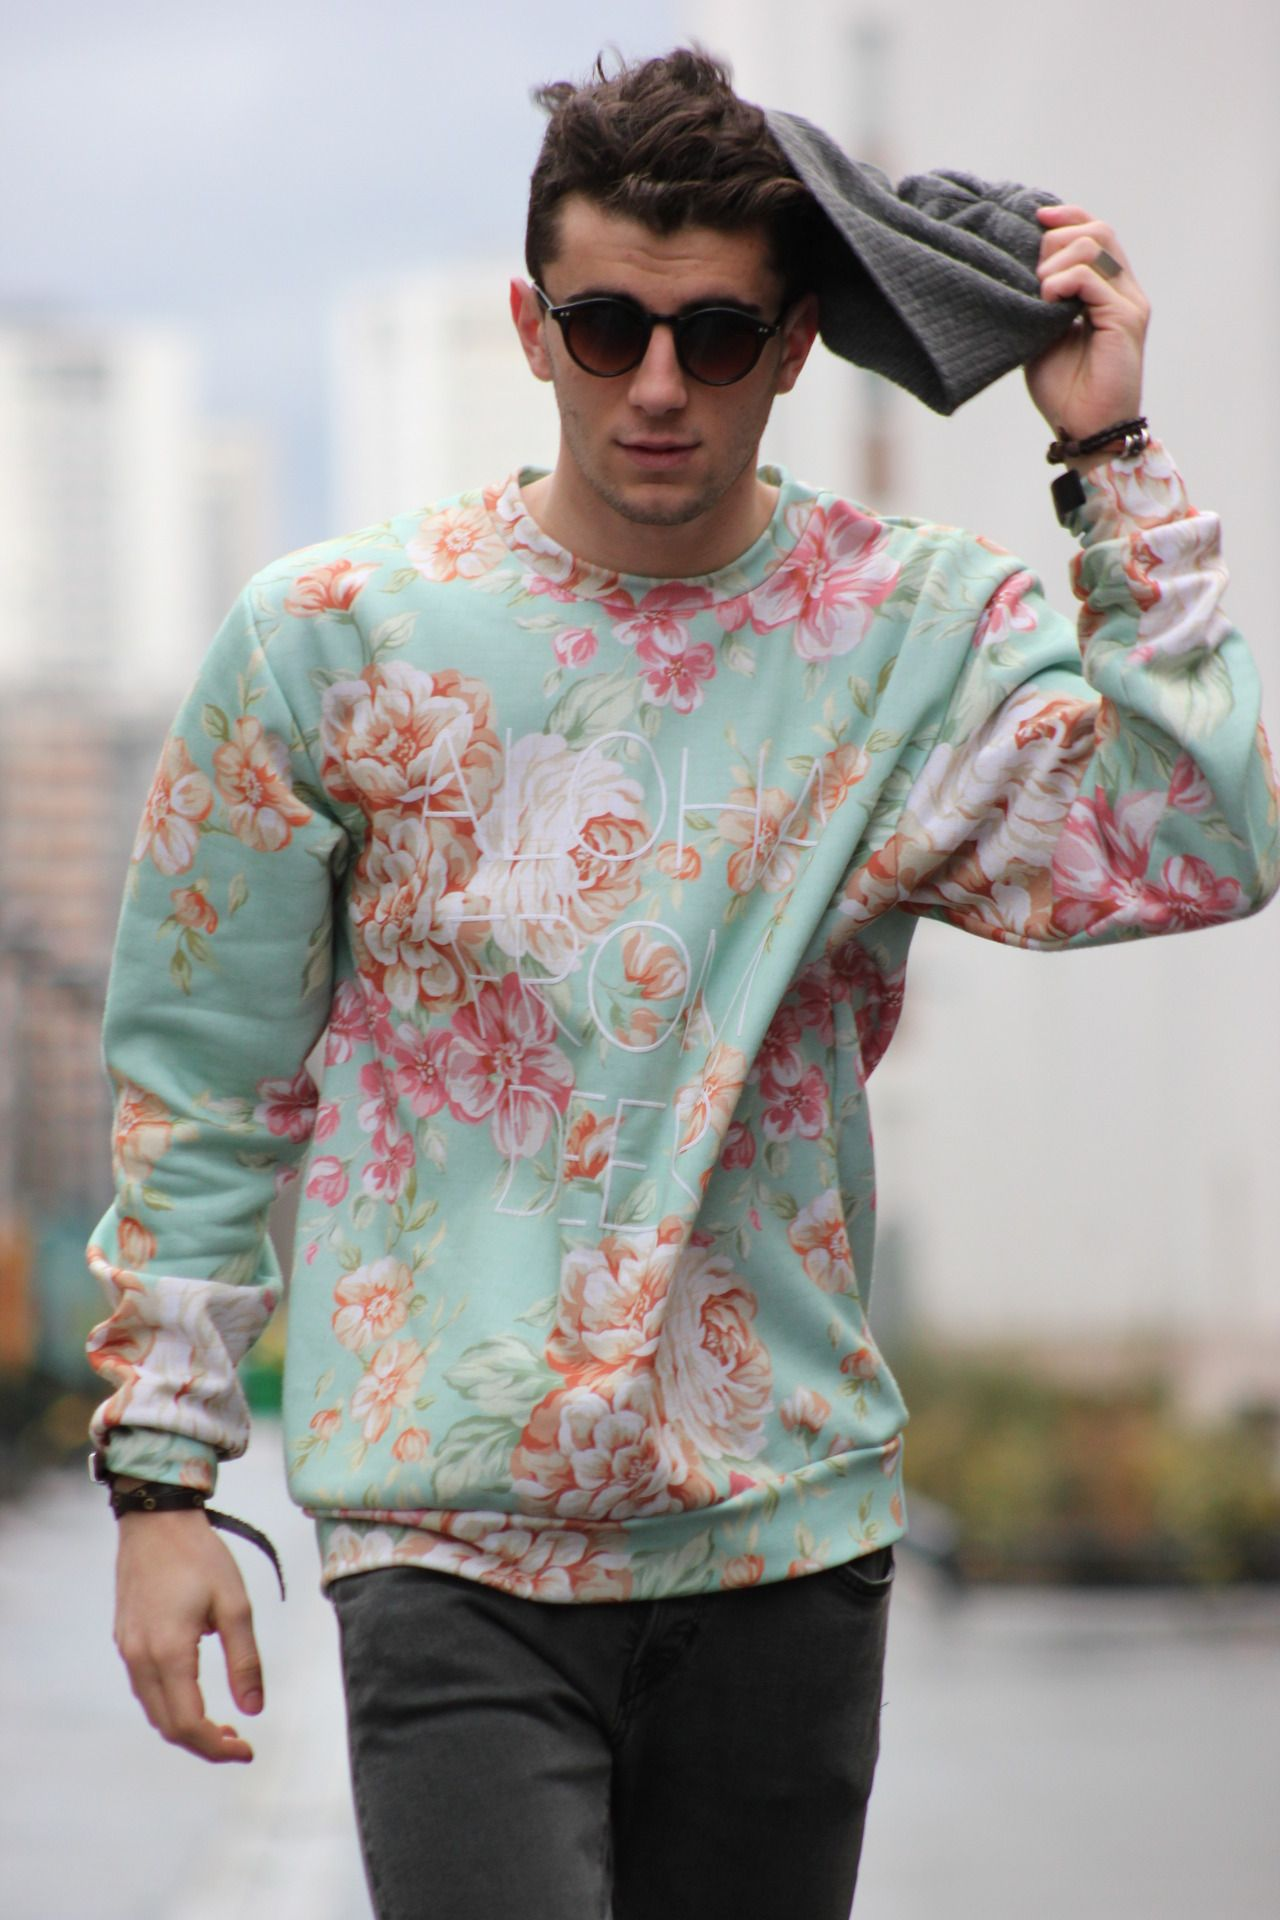 yourstyle men: clmtlsr: Clément Lasserre for Aloha From Deer